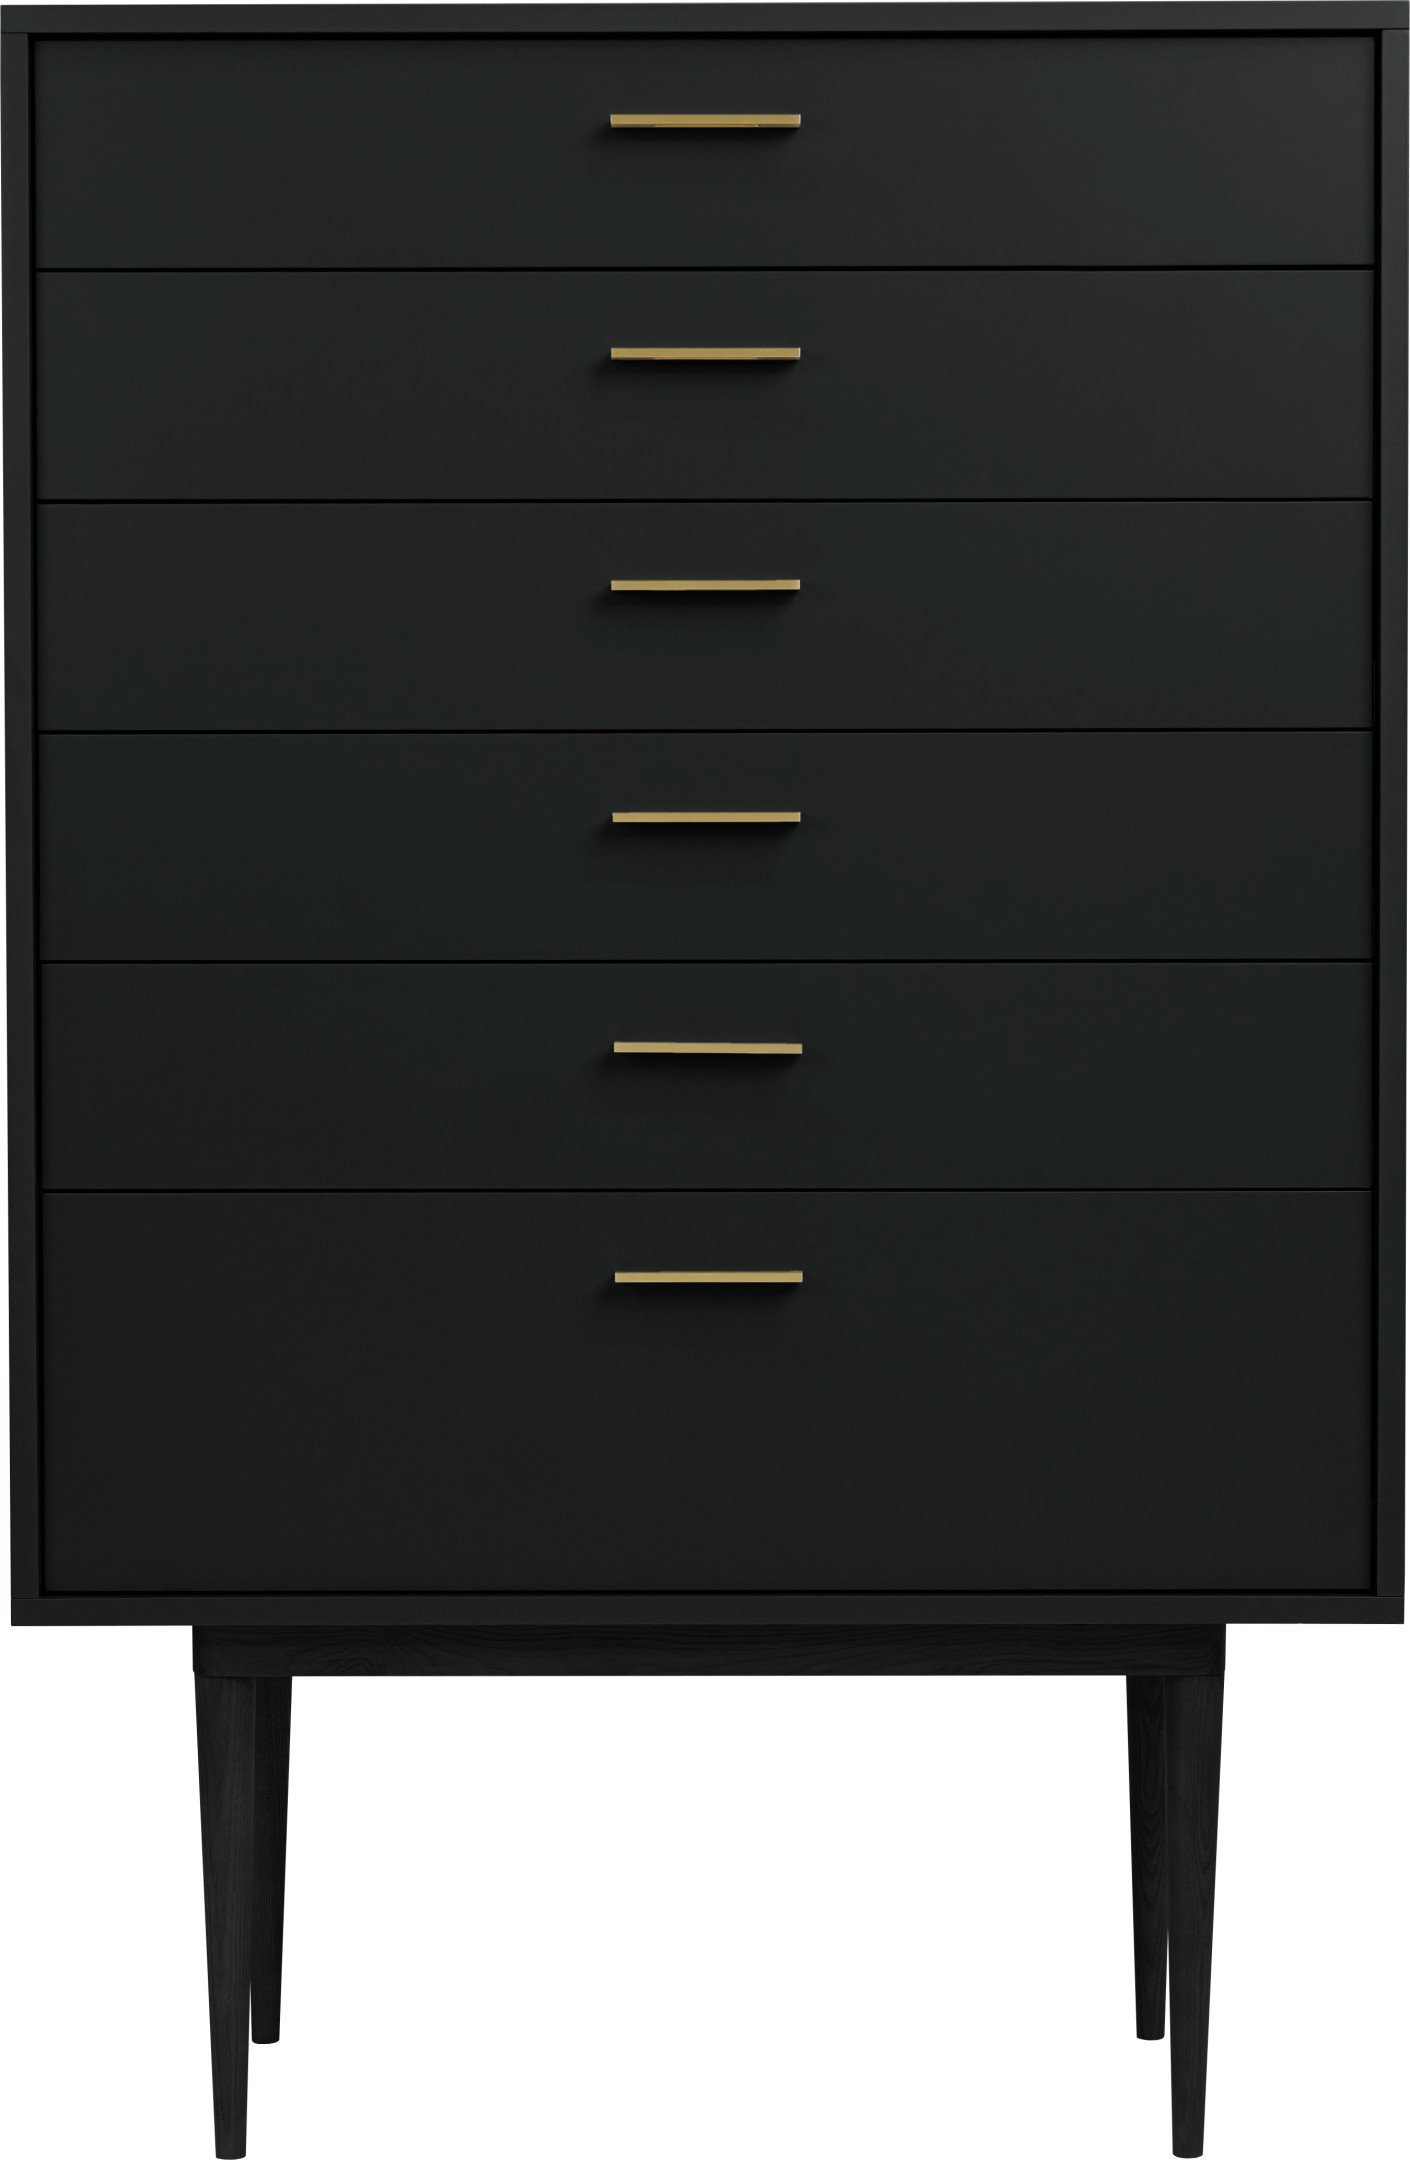 Logun Chest of Drawers Black, noo.ma